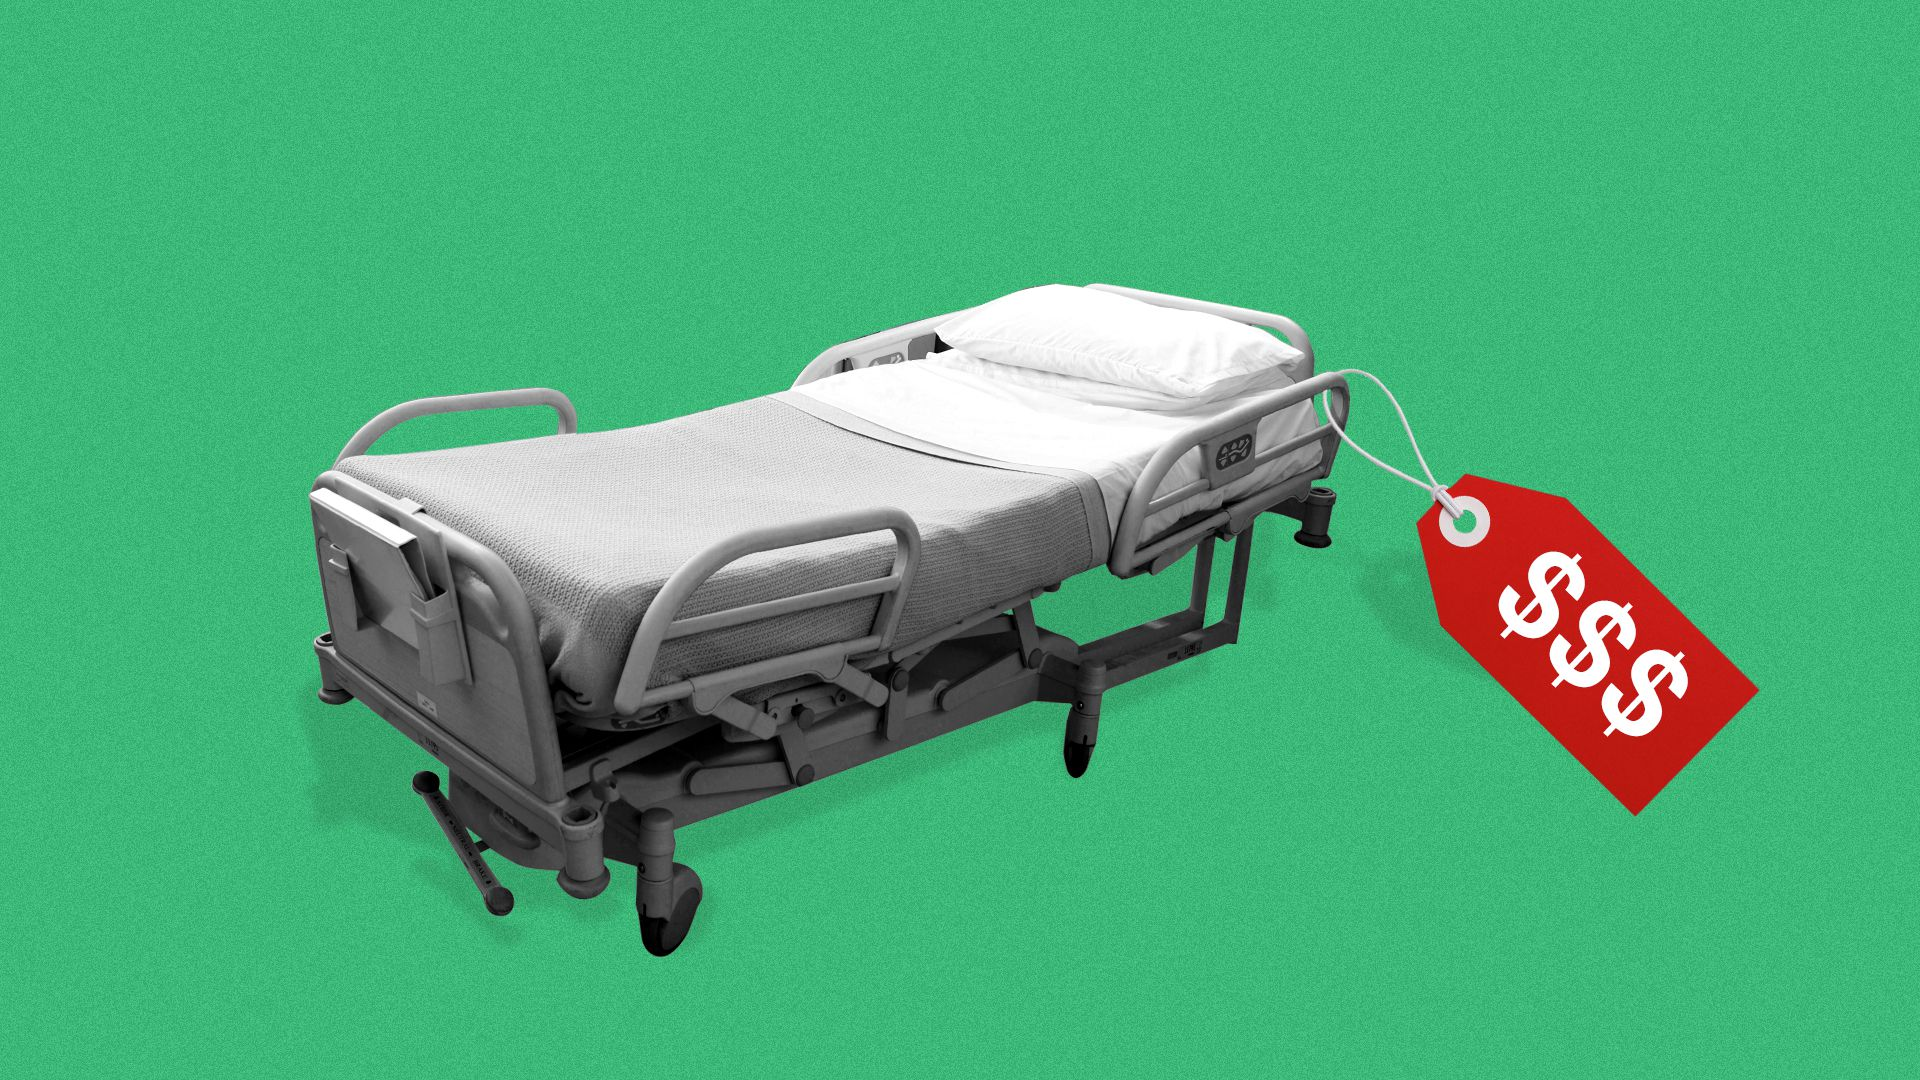 1 big thing: Getting patients to price shop is hard